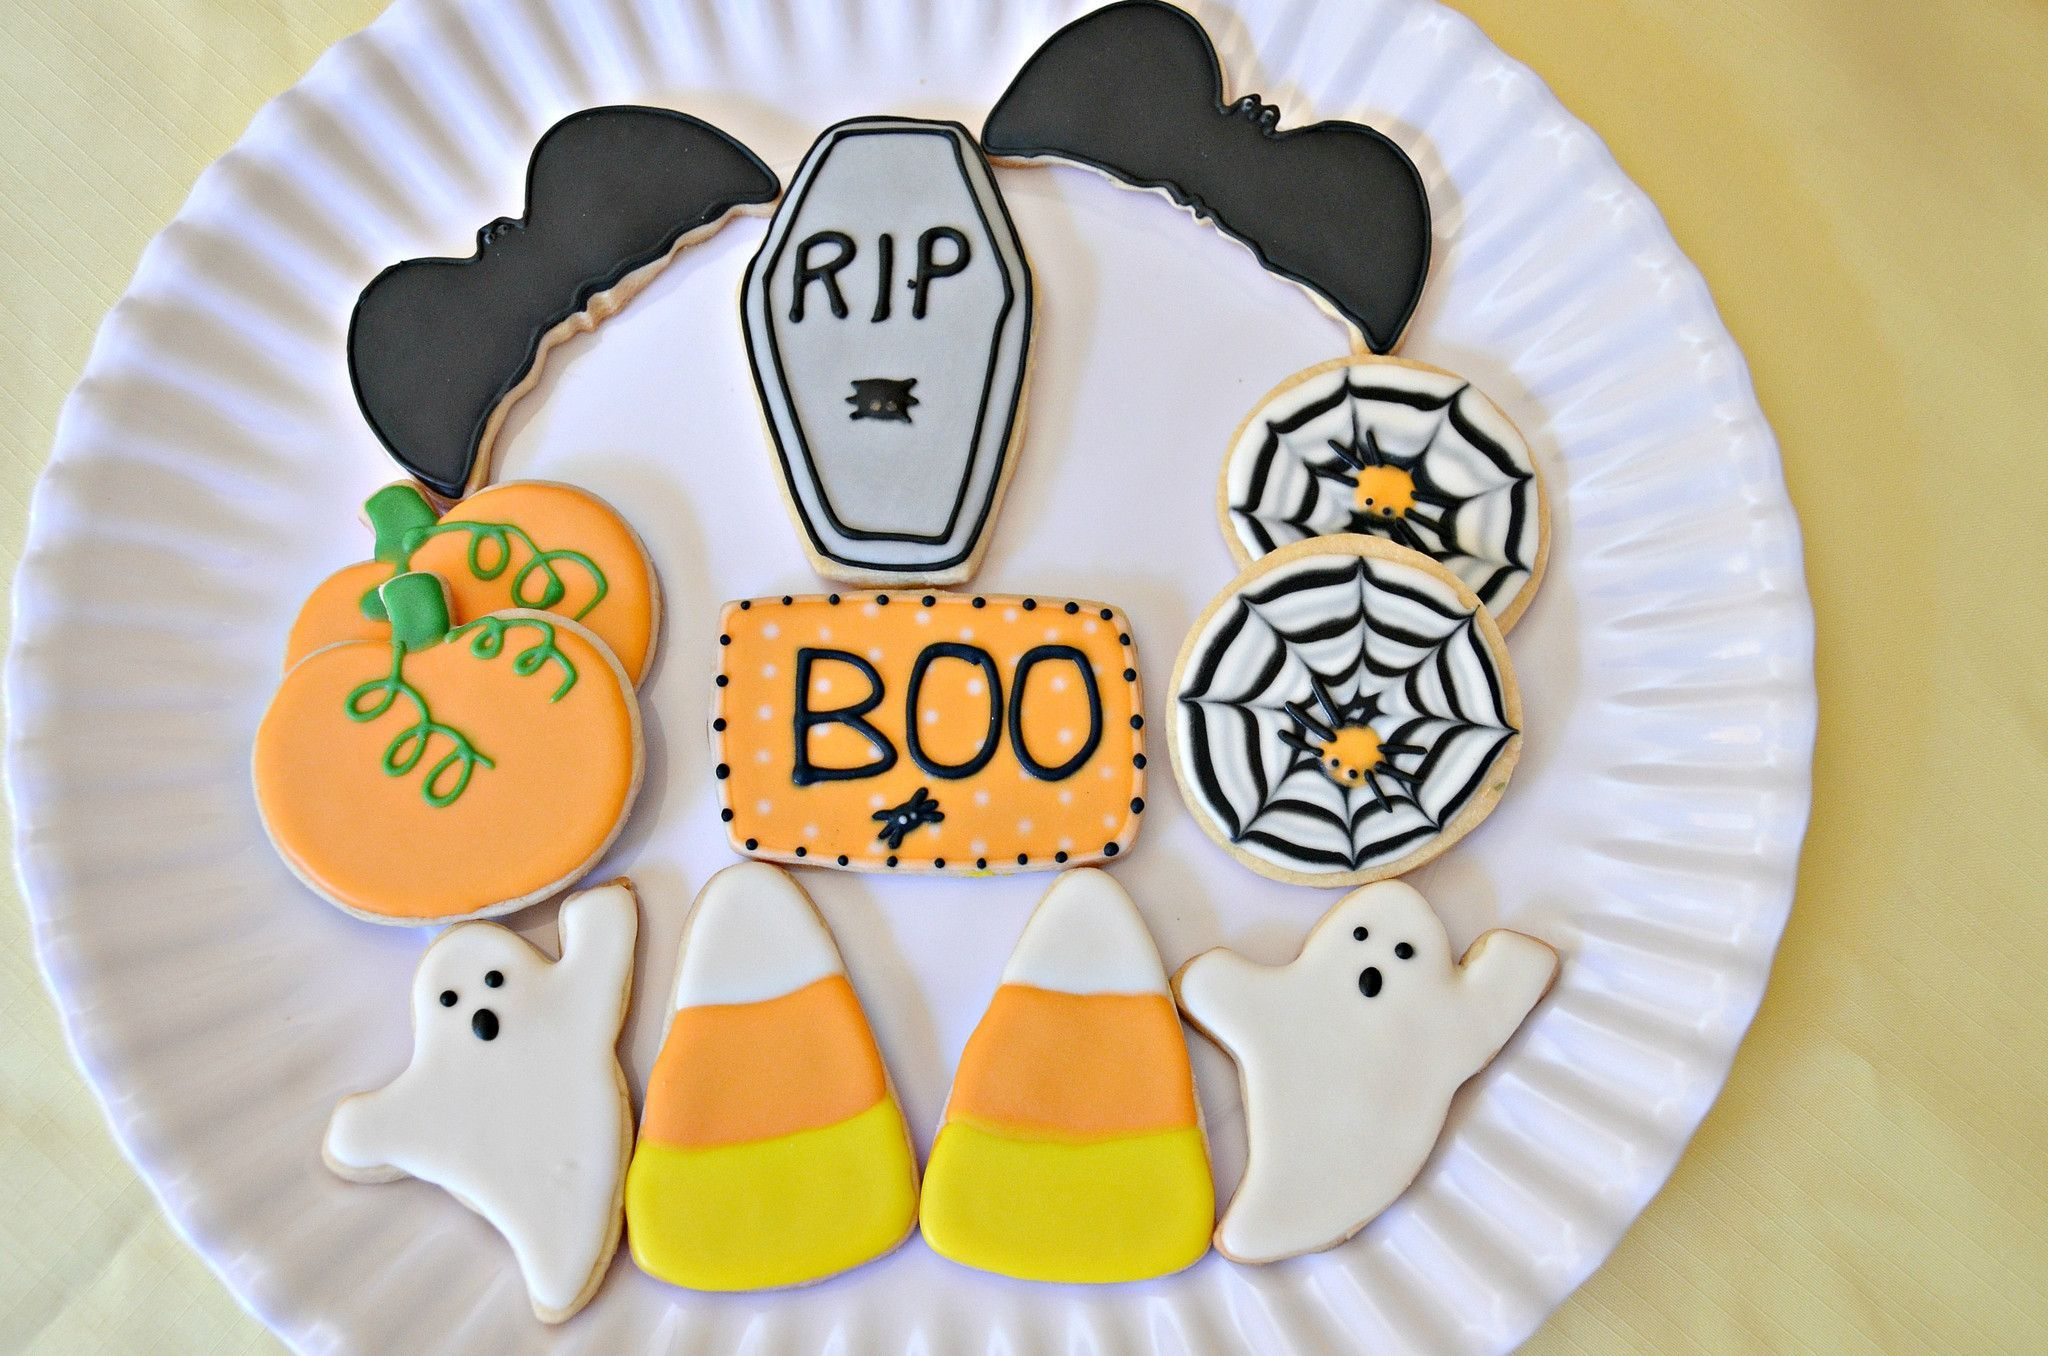 Send a spooktacular gift this Halloween! Our custom cookies include